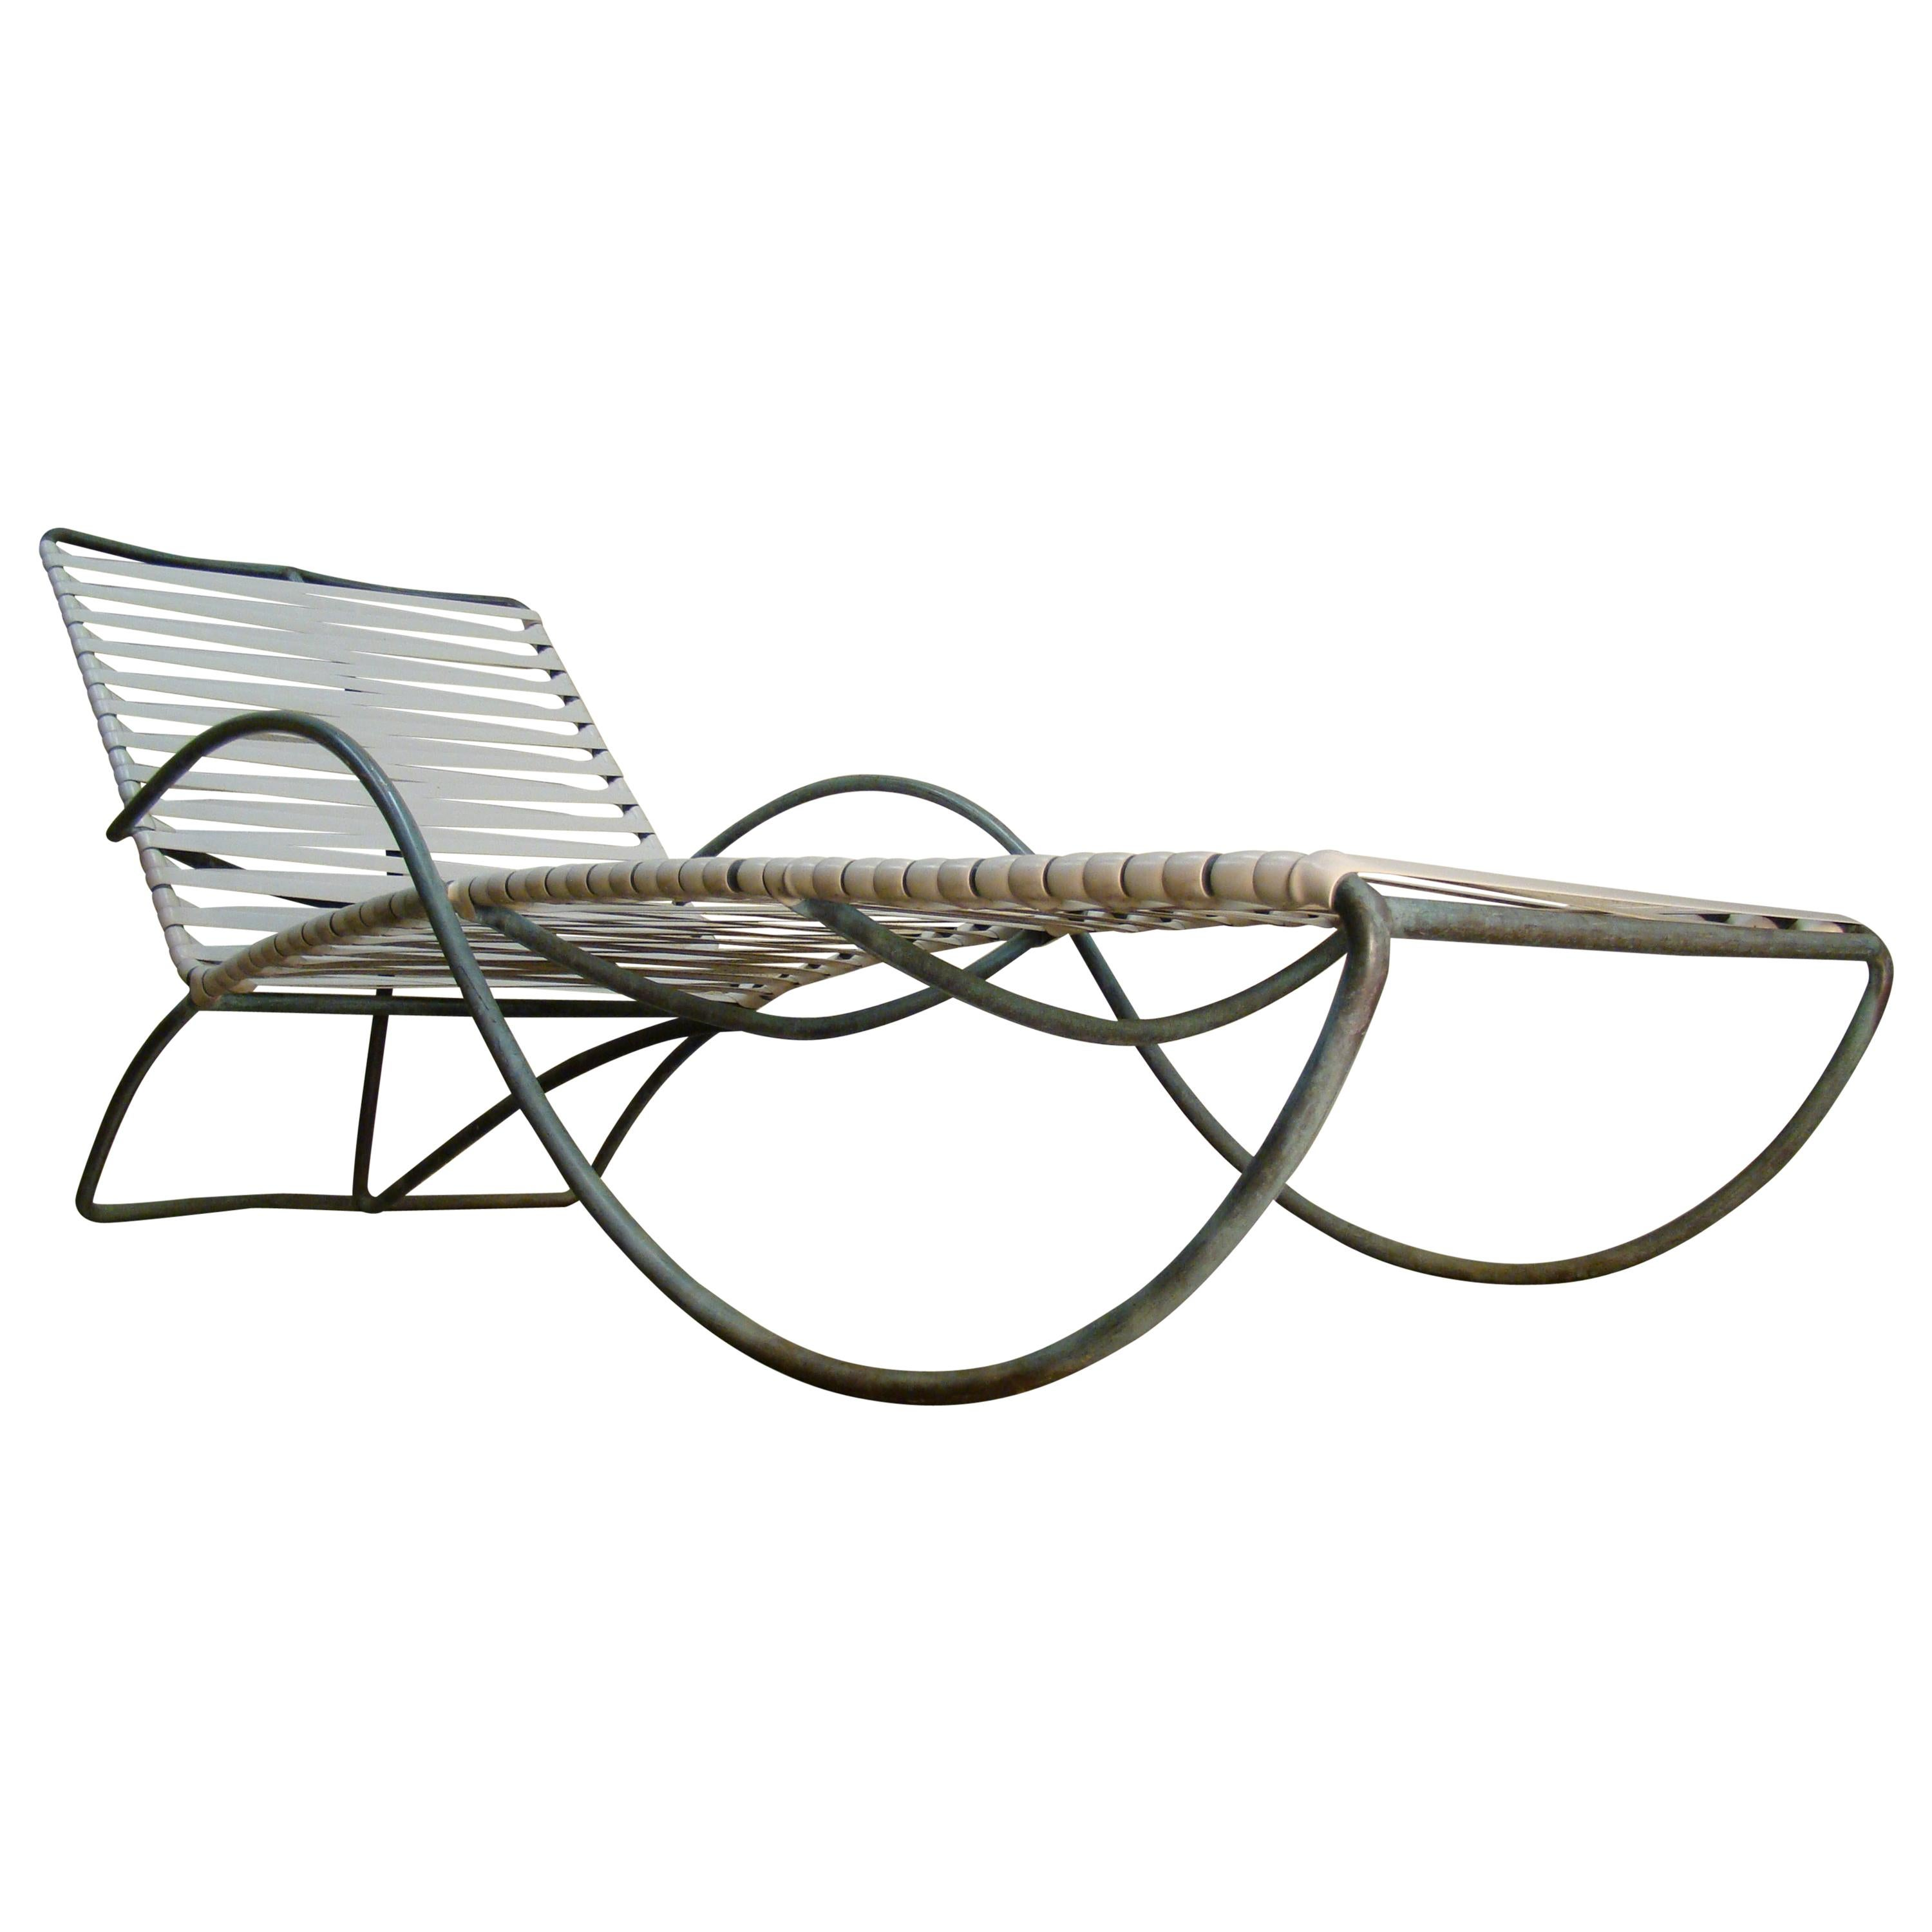 Chaise Lounge '#2' by Walter Lamb for Brown-Jordan Outdoor in Bronze Tubing